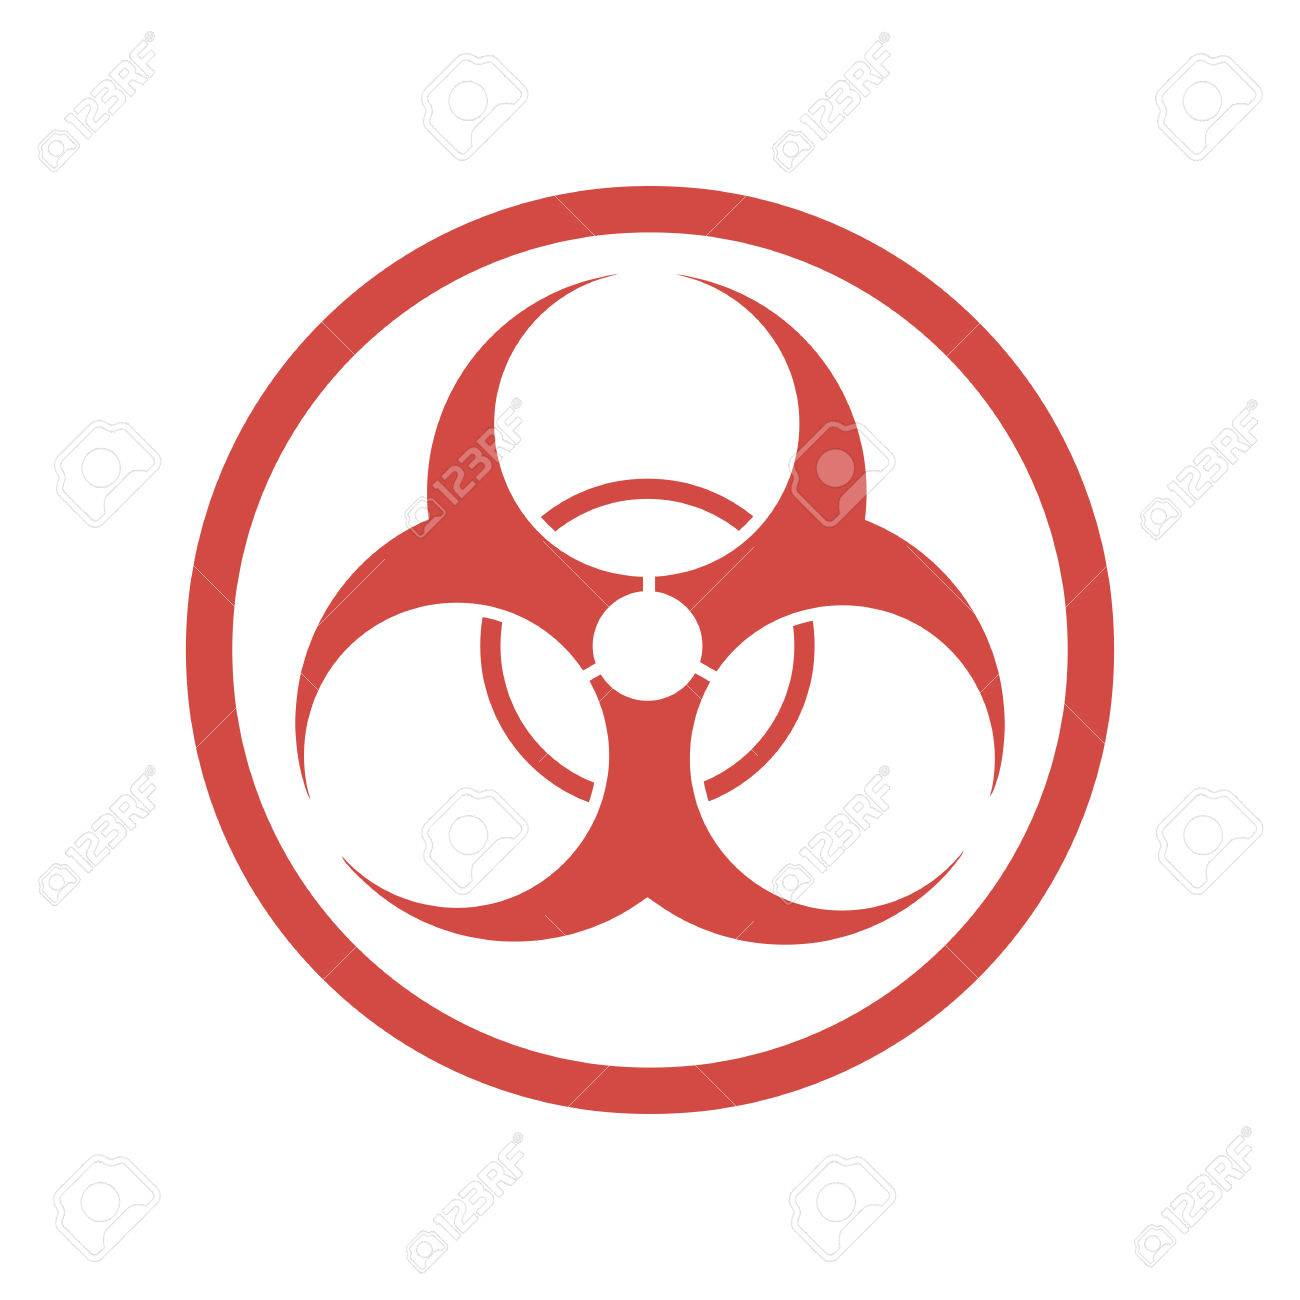 Biohazard icon in flat design vector illustration red symbol biohazard icon in flat design vector illustration red symbol of biohazard isolated on biocorpaavc Image collections